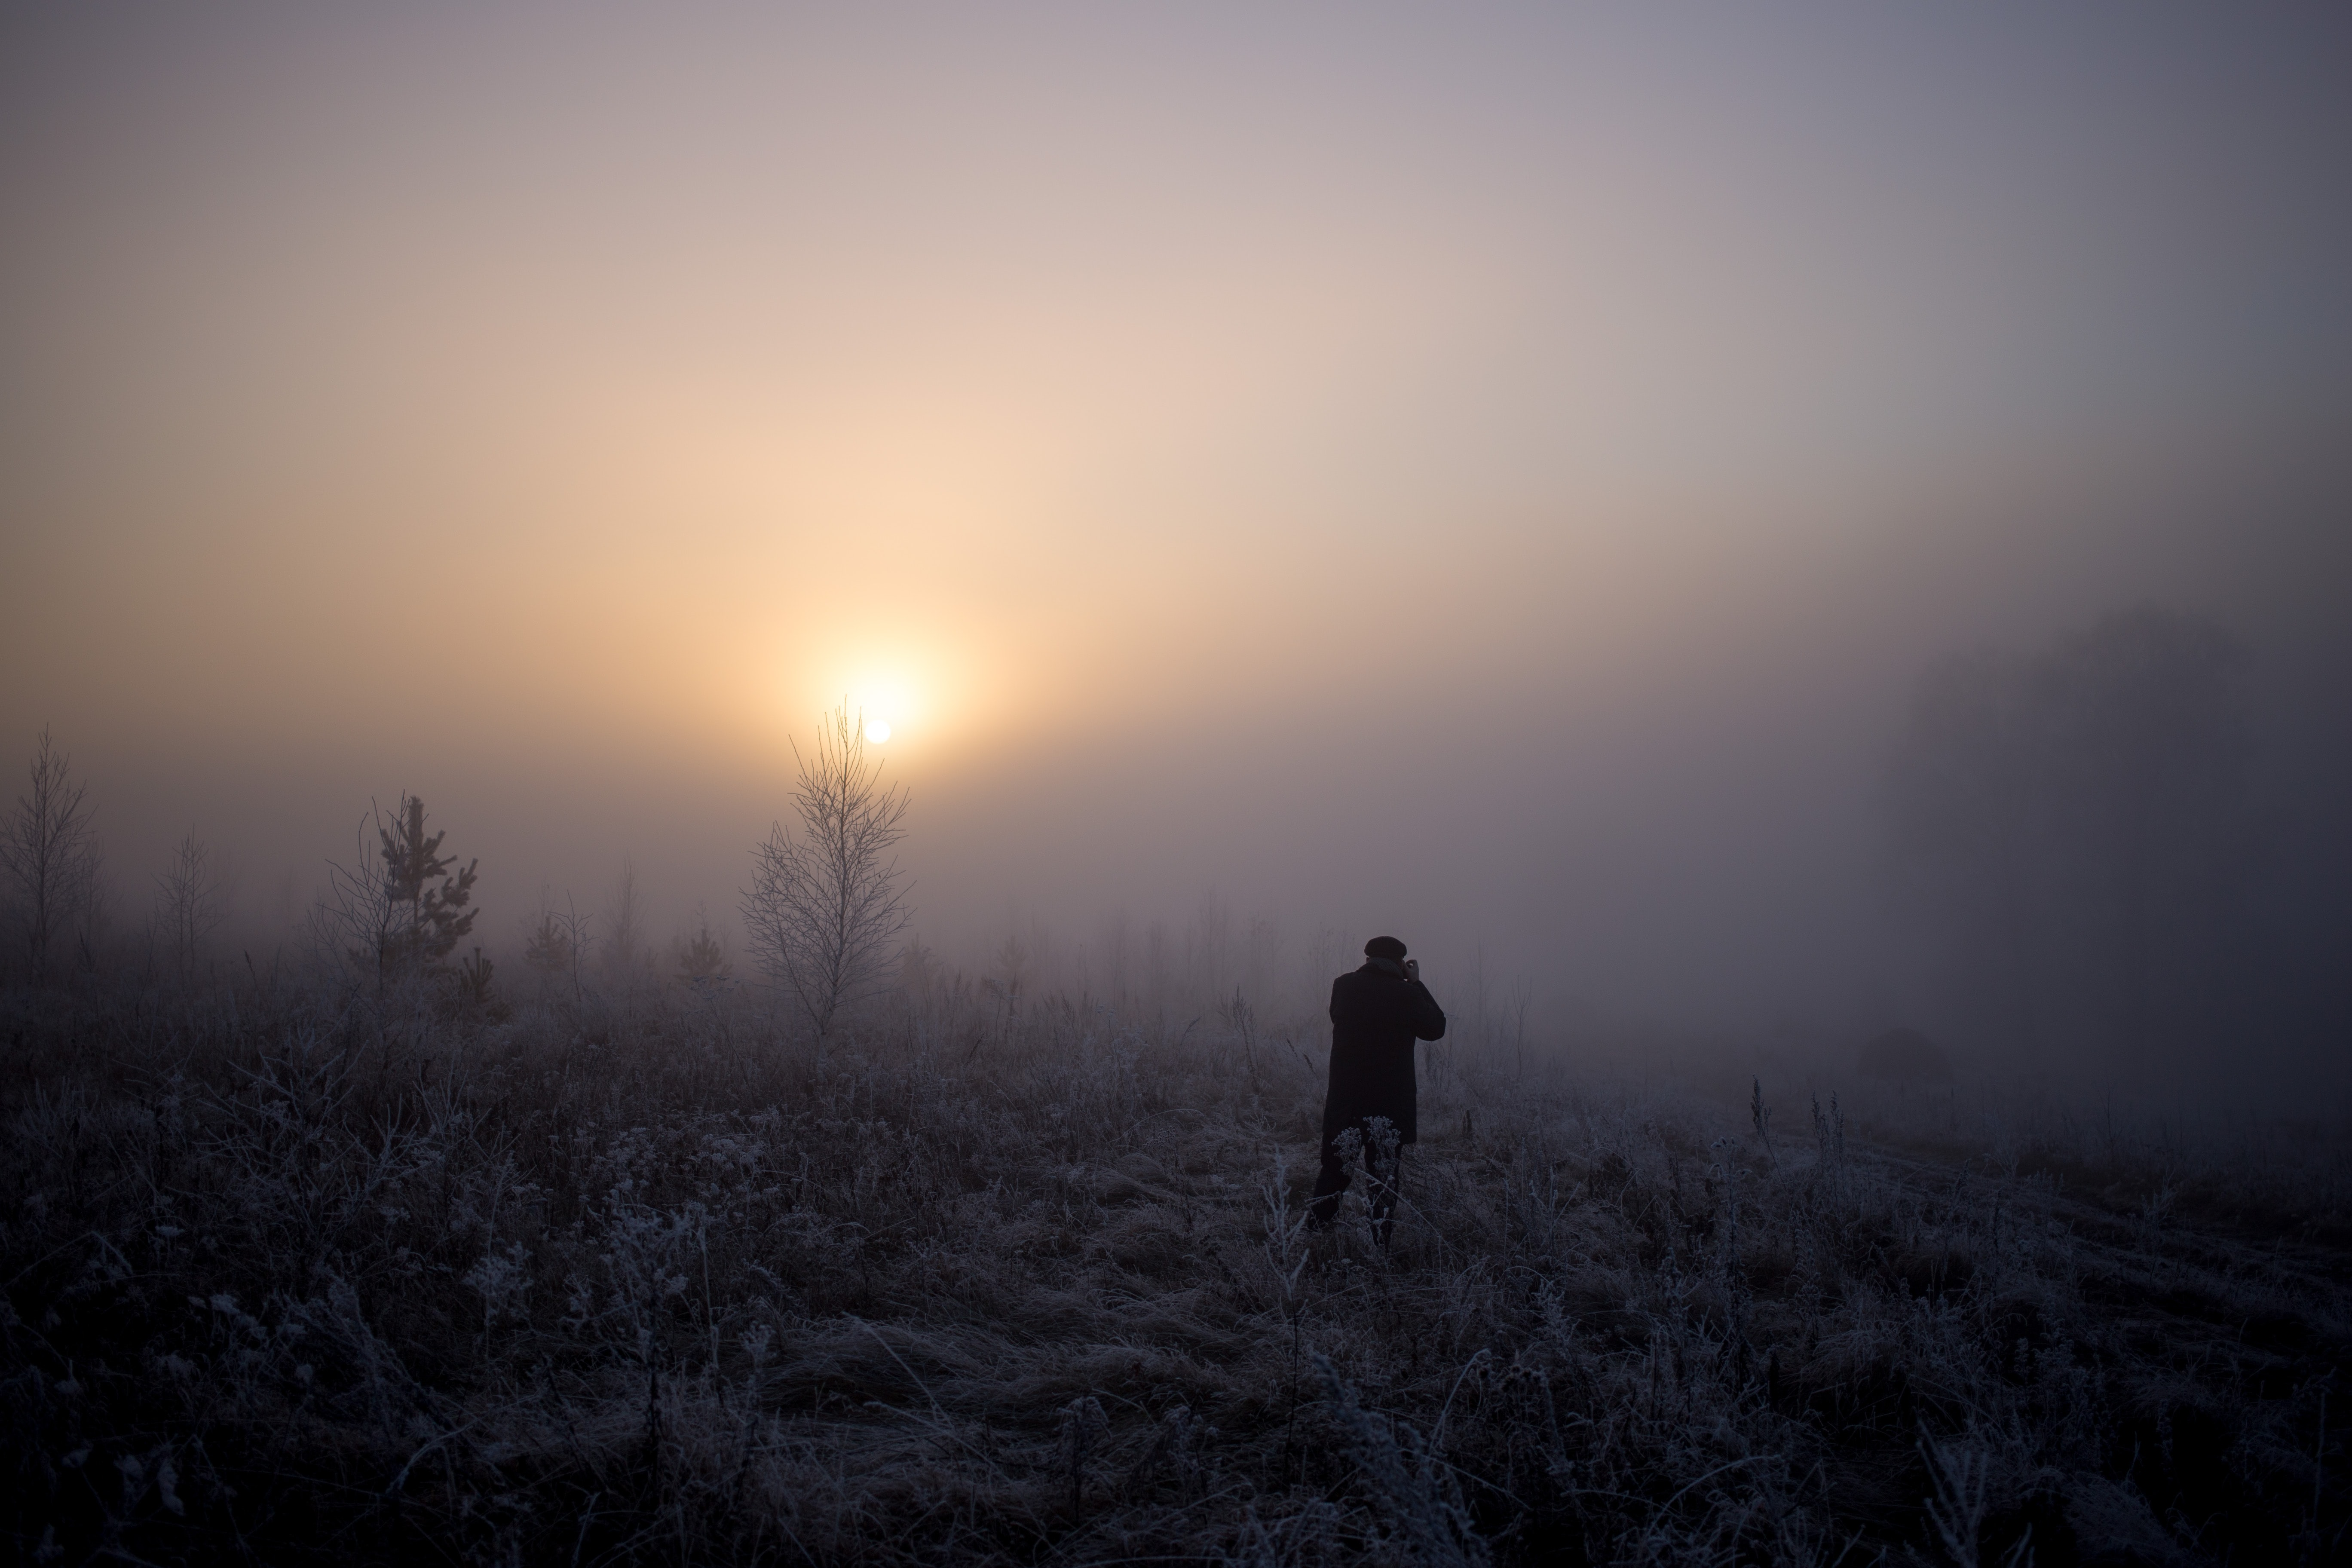 Silhouette of a photographer taking forest photos in the fog